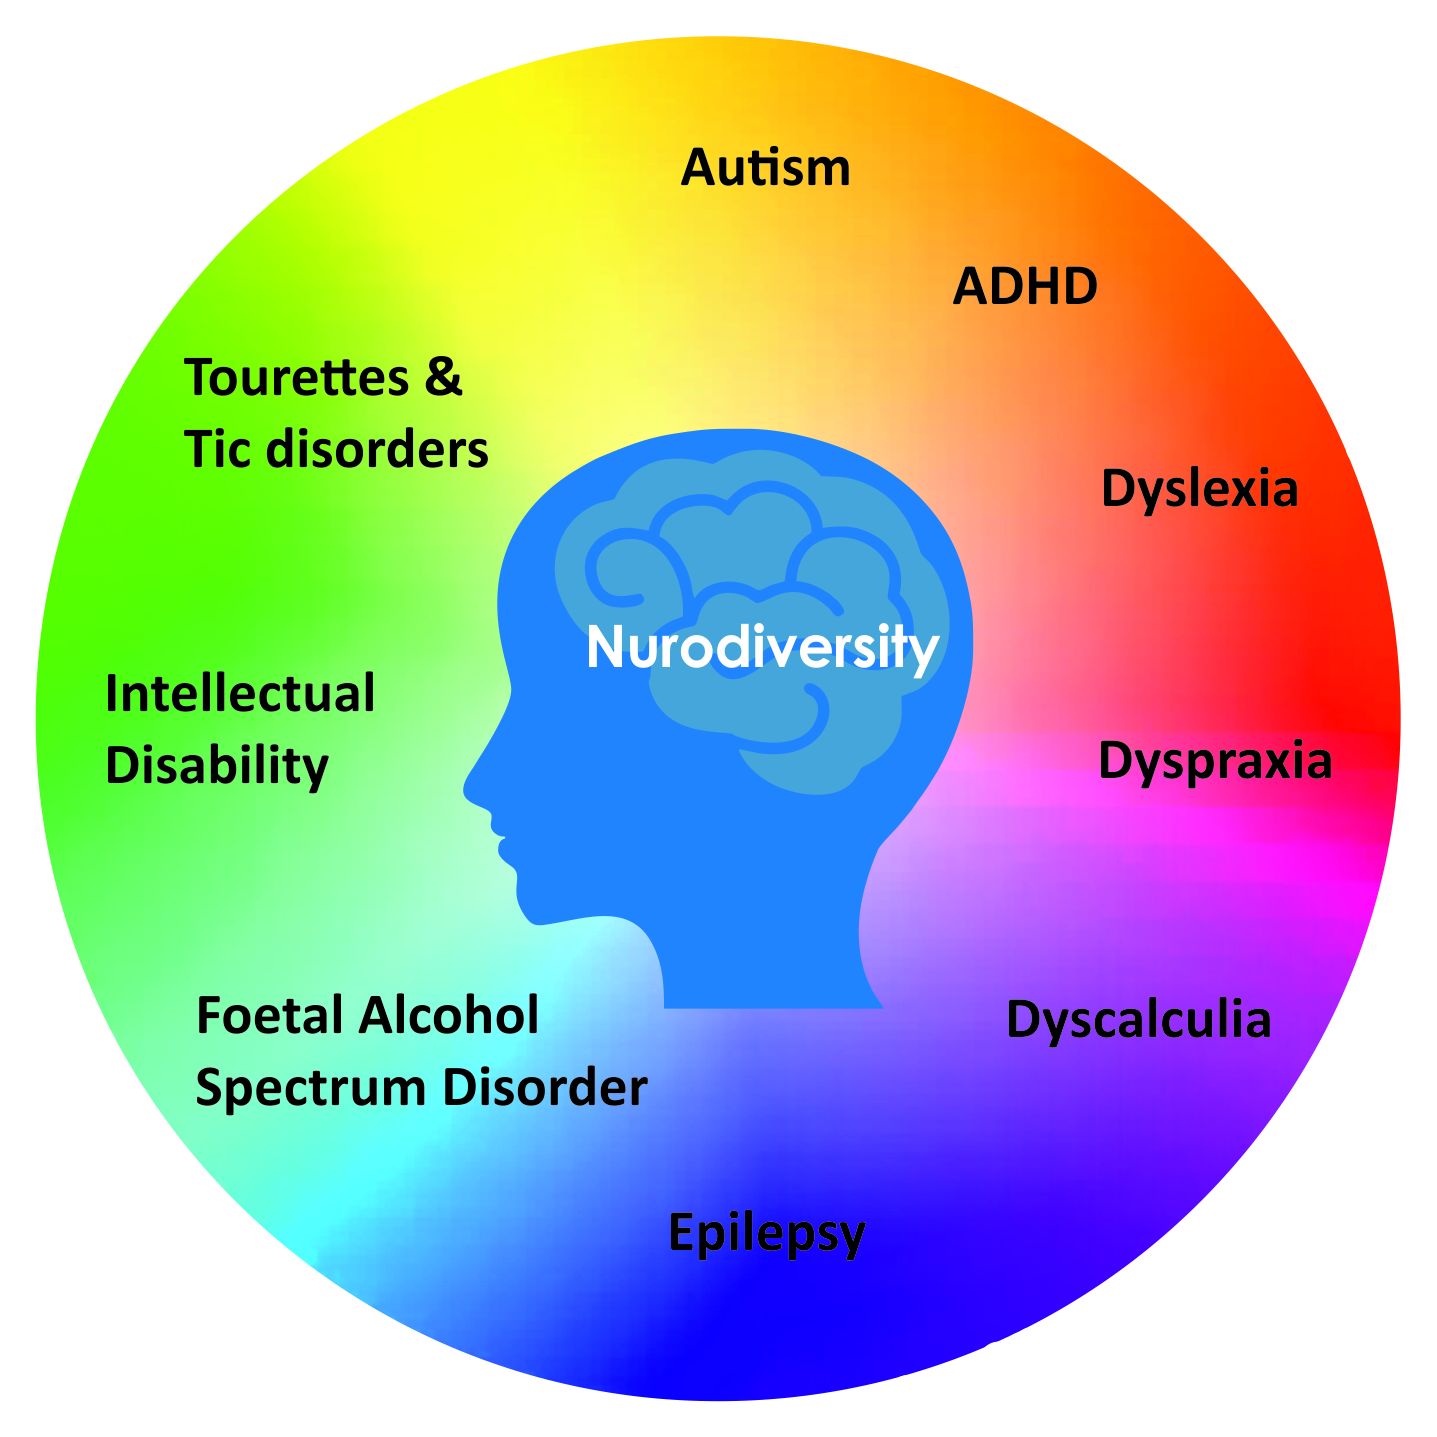 An image detailing co-occurrence and neurodiversity